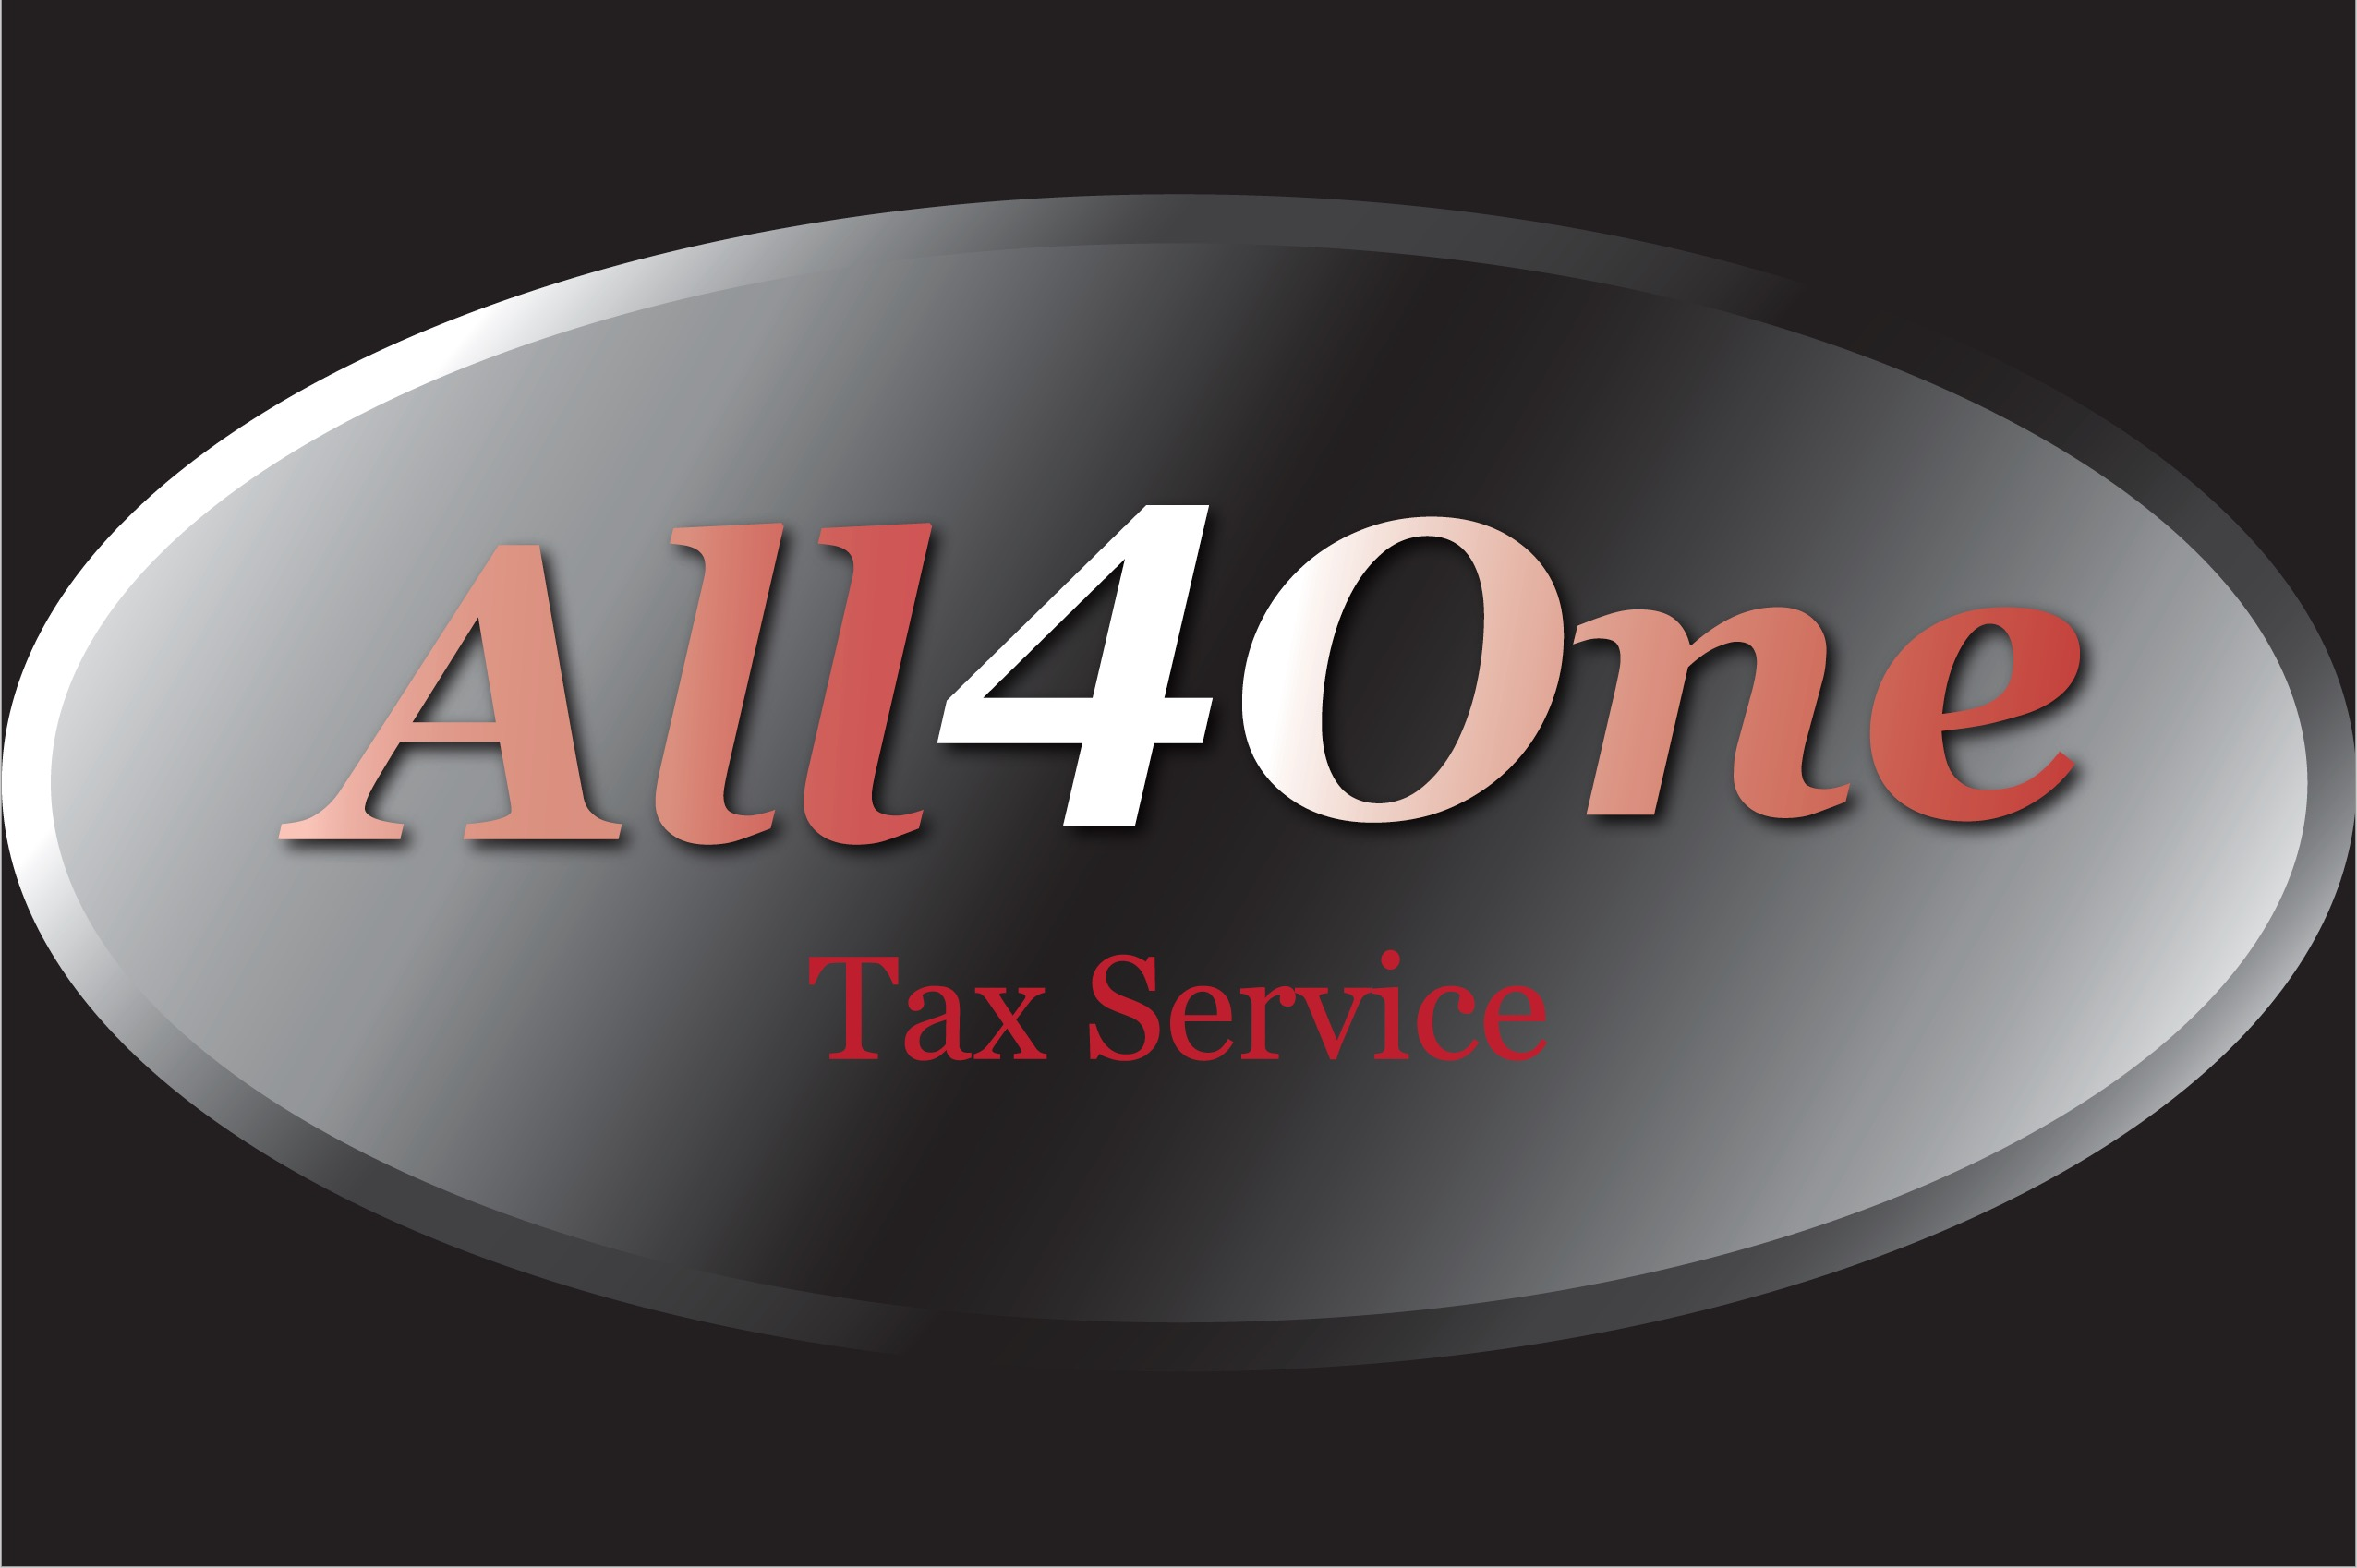 All4One Tax Service